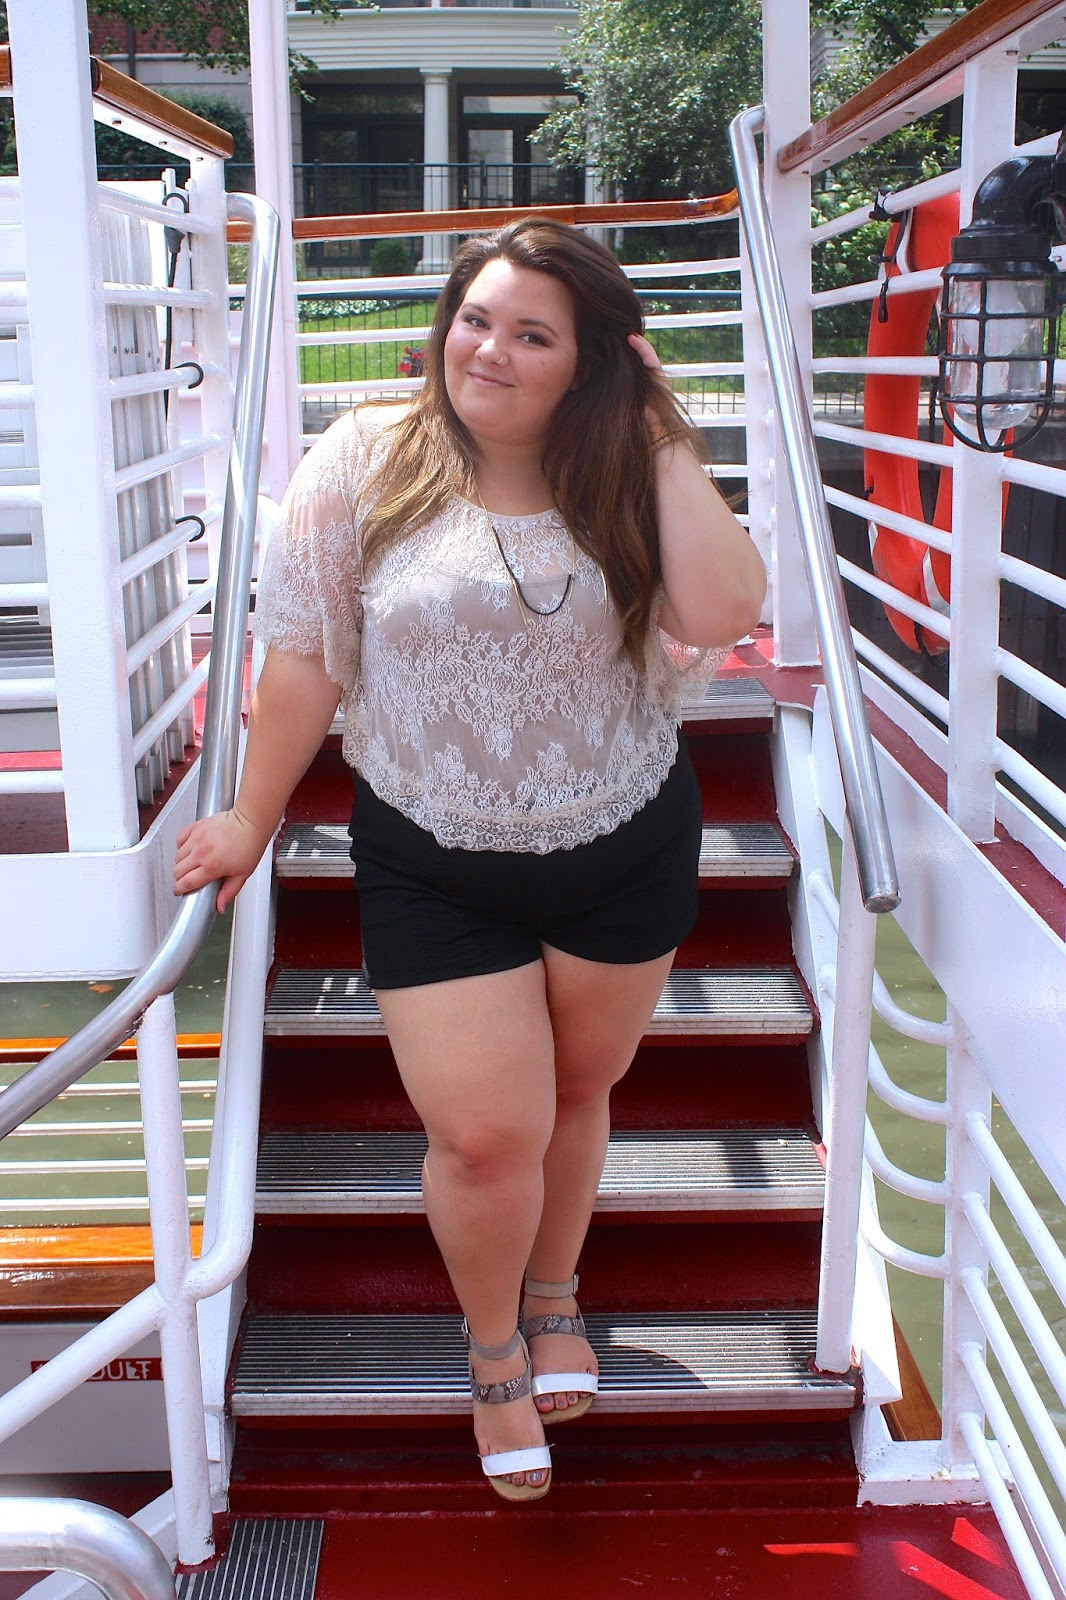 natalie in the city, chicago, shoreline sightseeing, plus size fashion, fashion blogger, windy city blogger, curvy, urban outfitters, natalie craig, chicago river, chicago architecture, trump tower